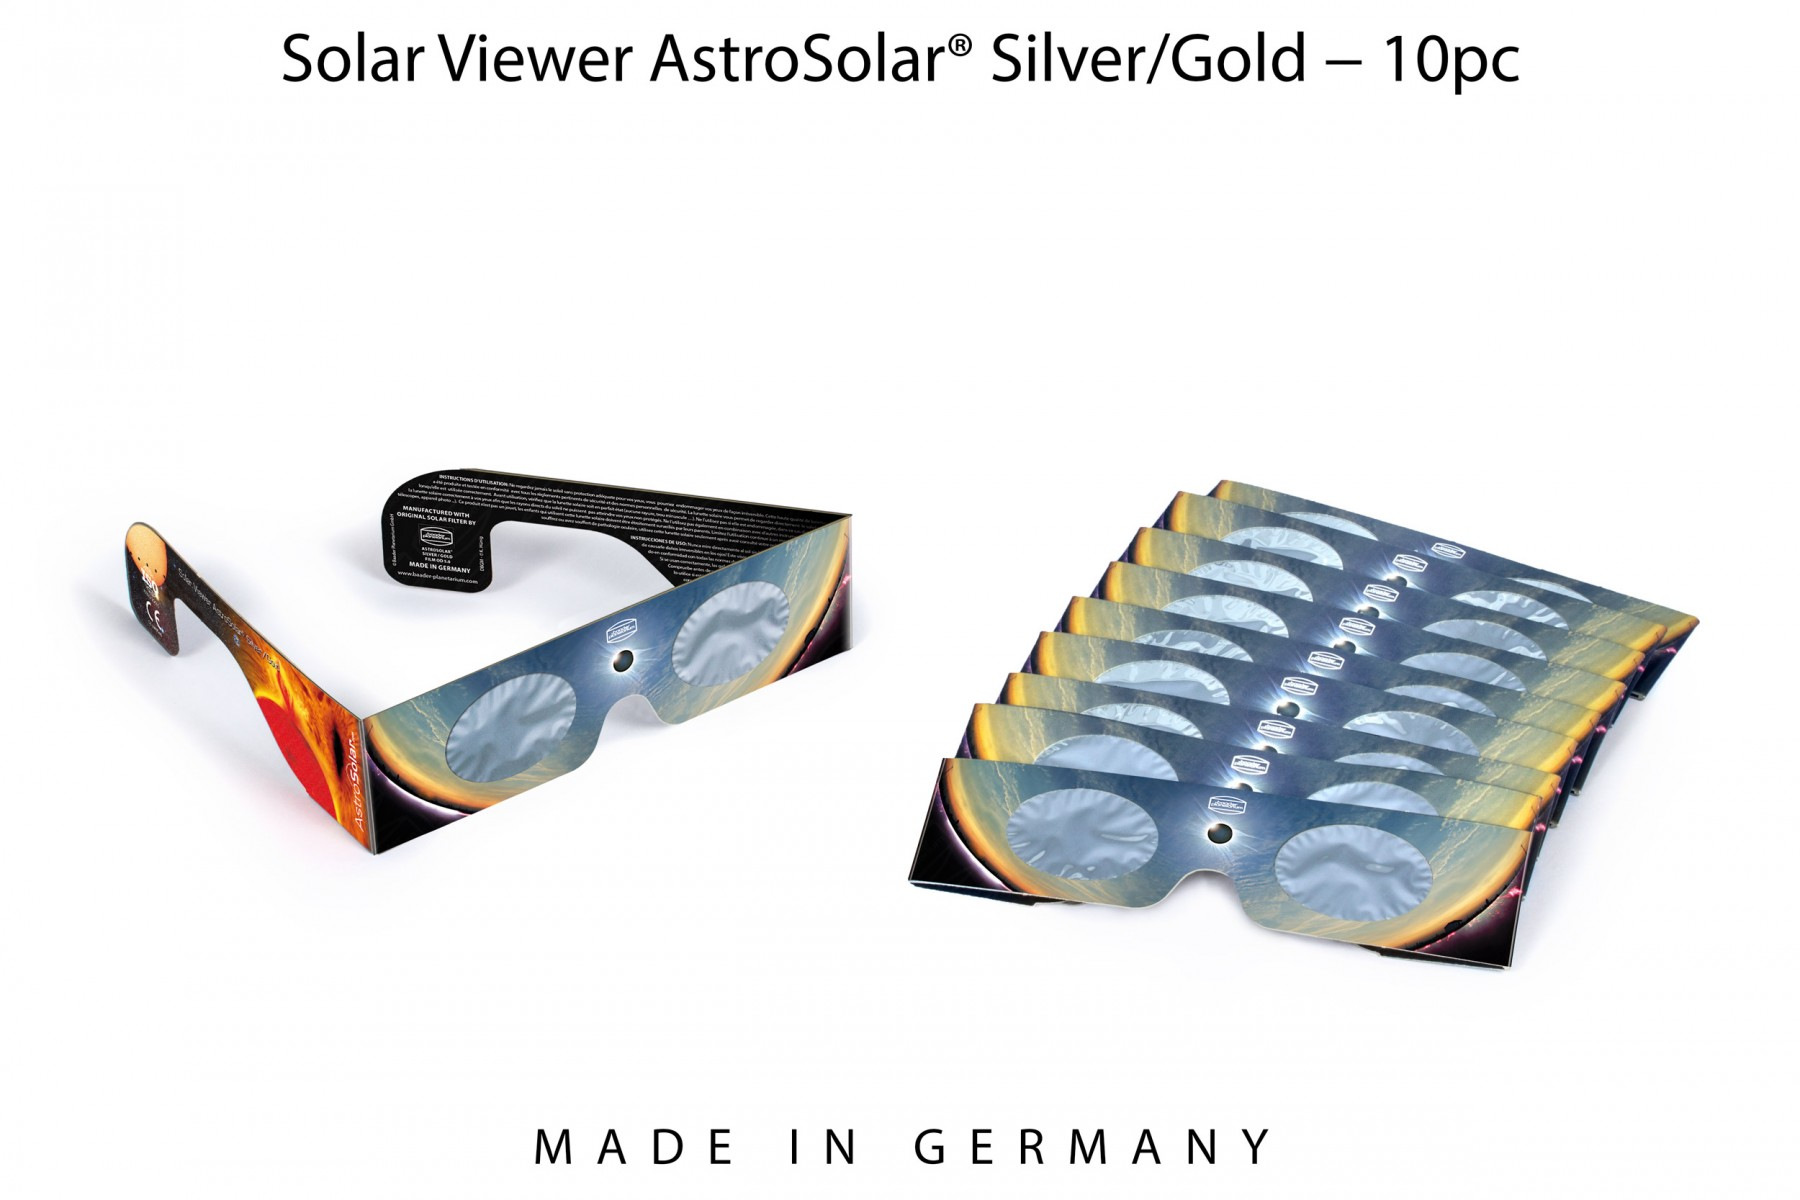 10 x Solar Viewer AstroSolar® Silver/Gold